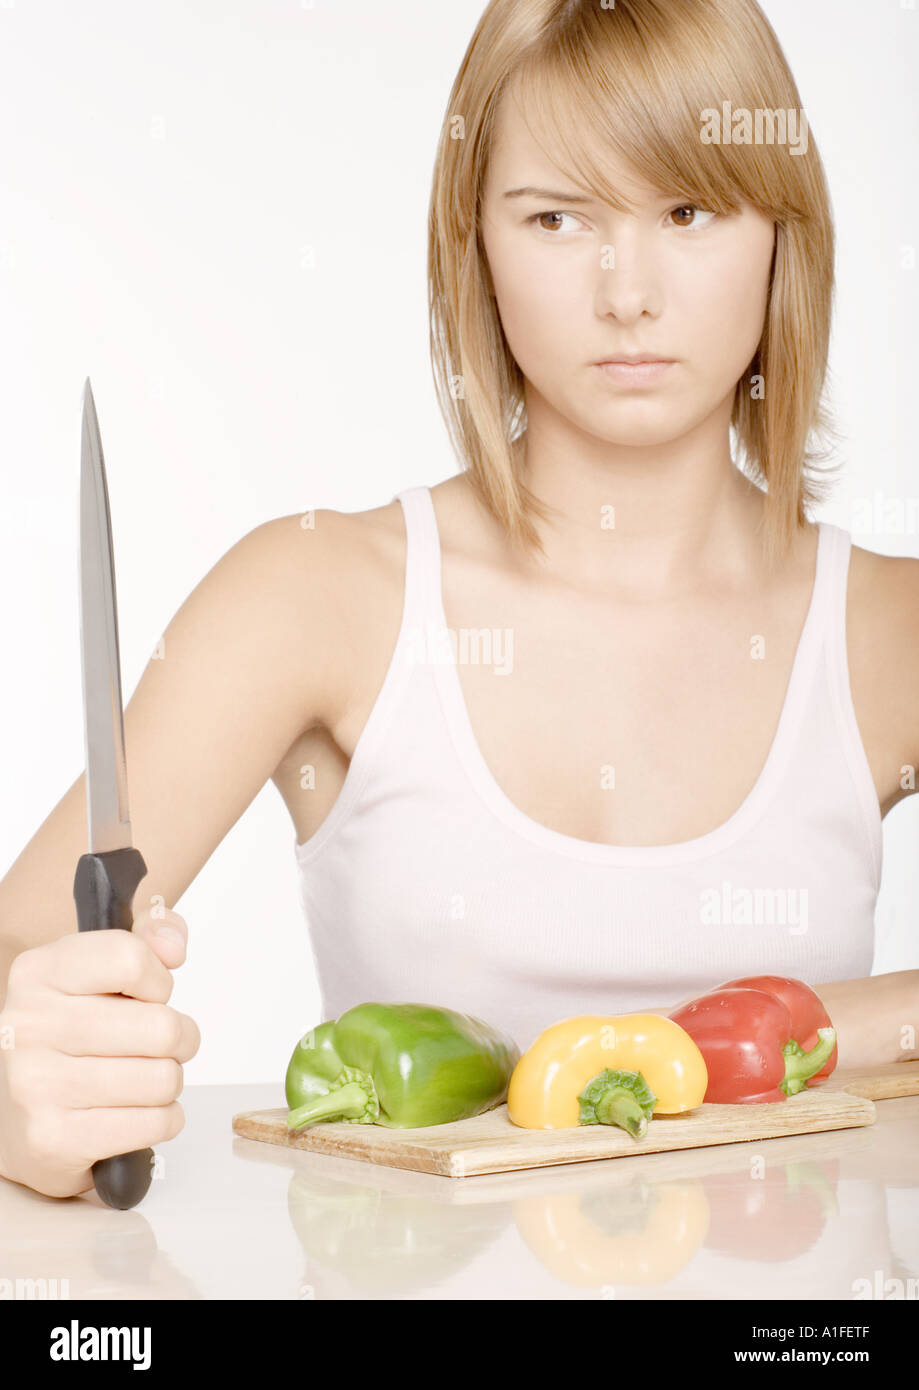 Young woman holding up knife in front of bell peppers - Stock Image